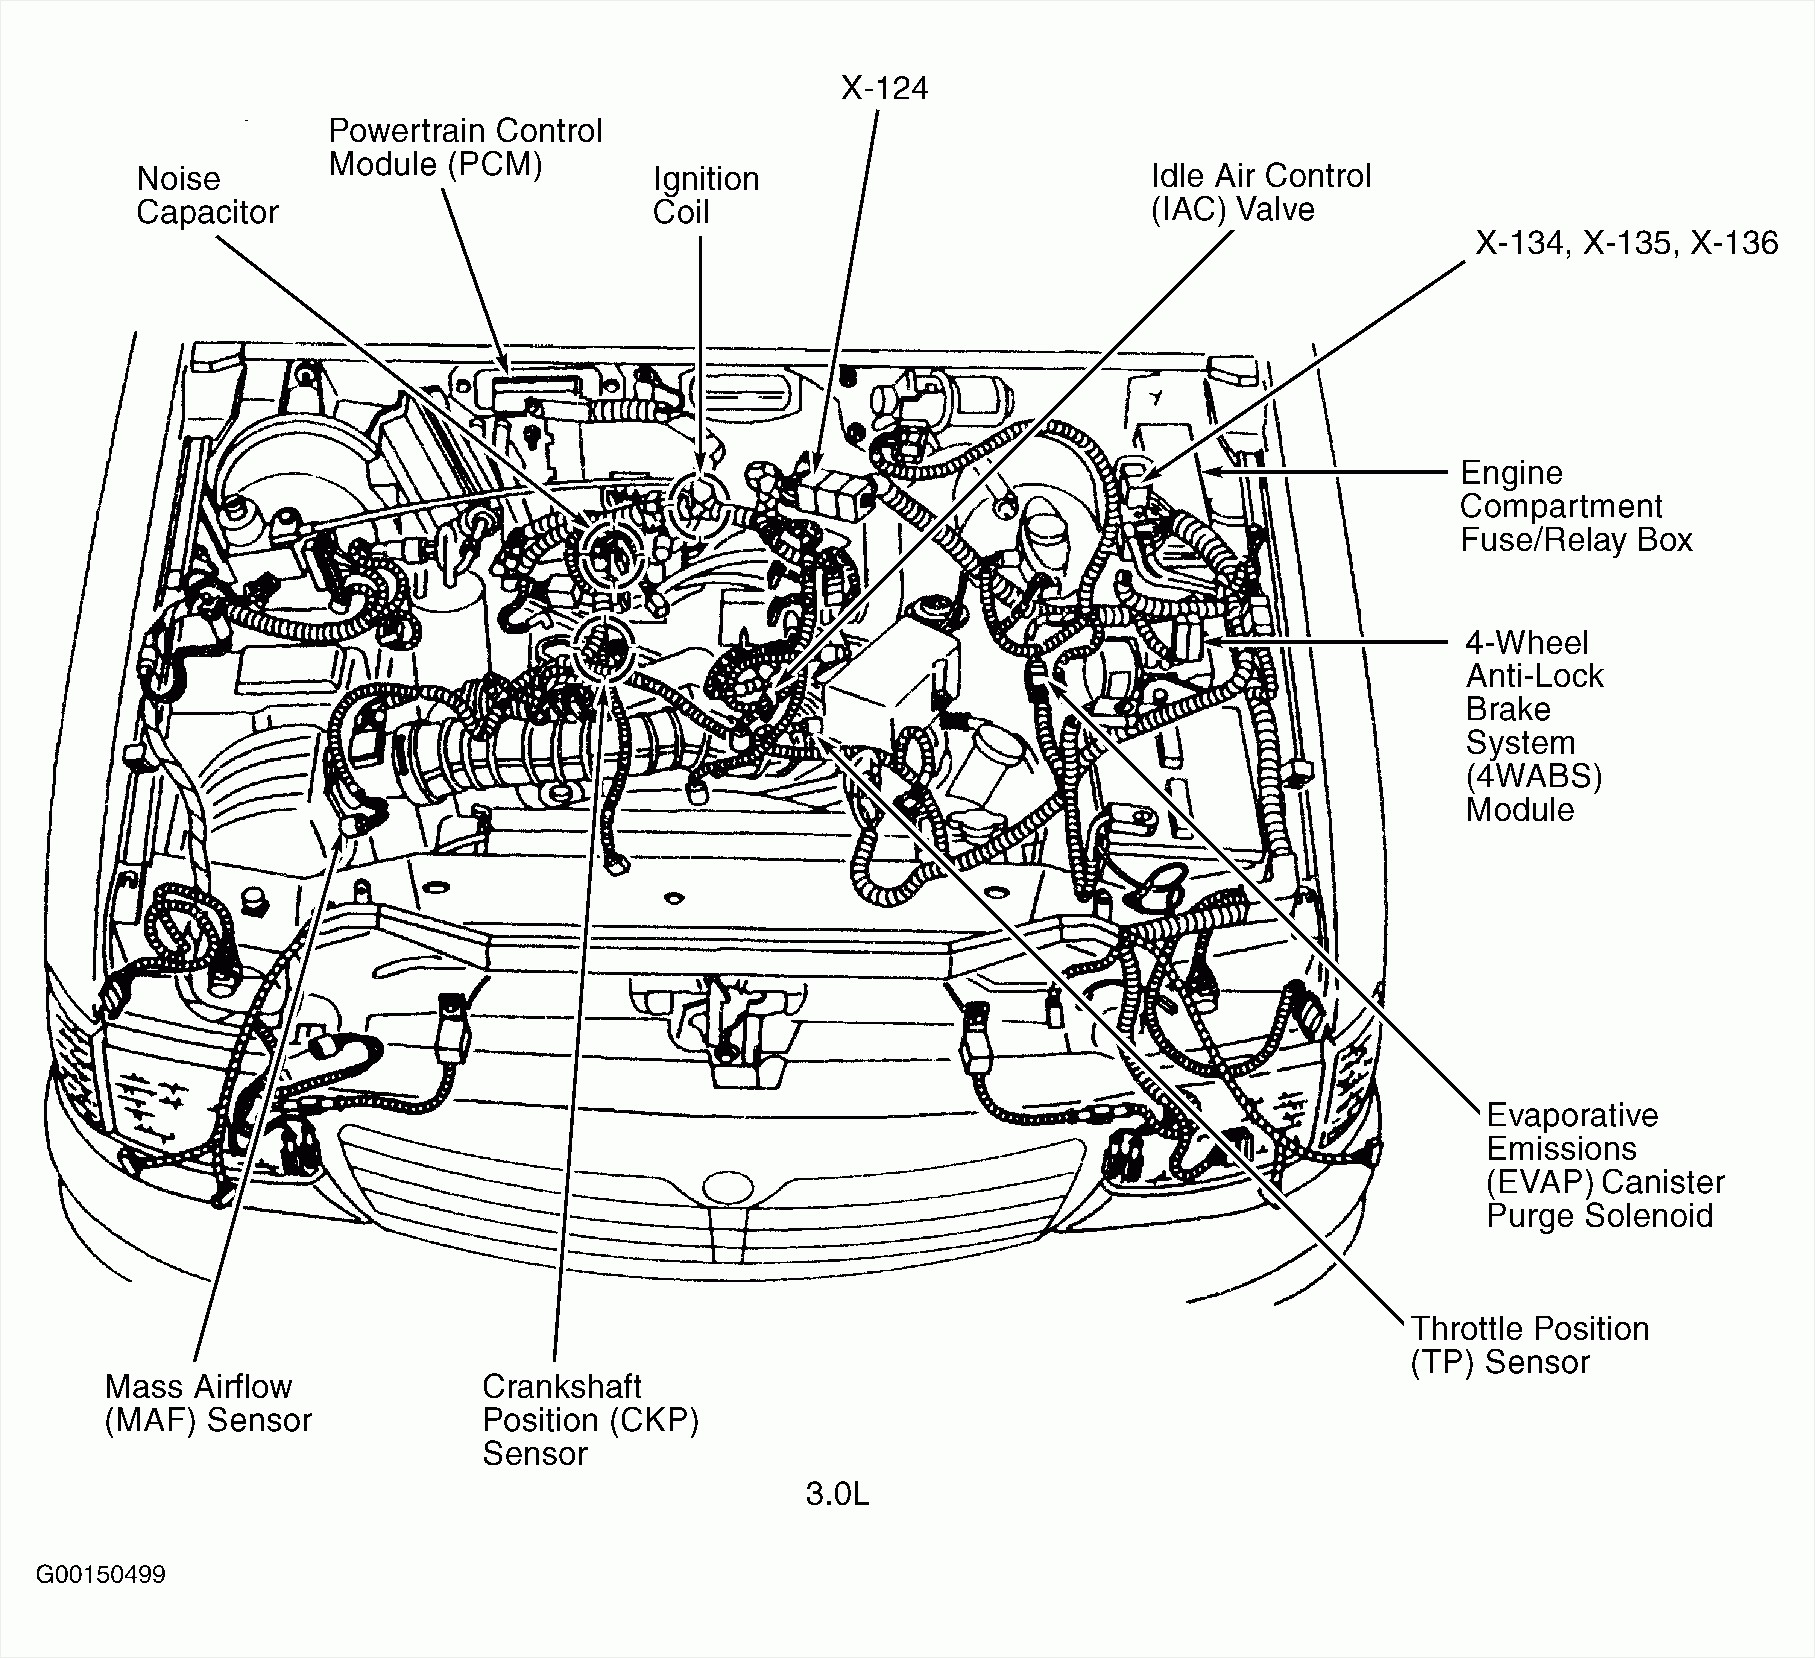 2002 Dodge Grand Caravan Engine Diagram Just Another Wiring